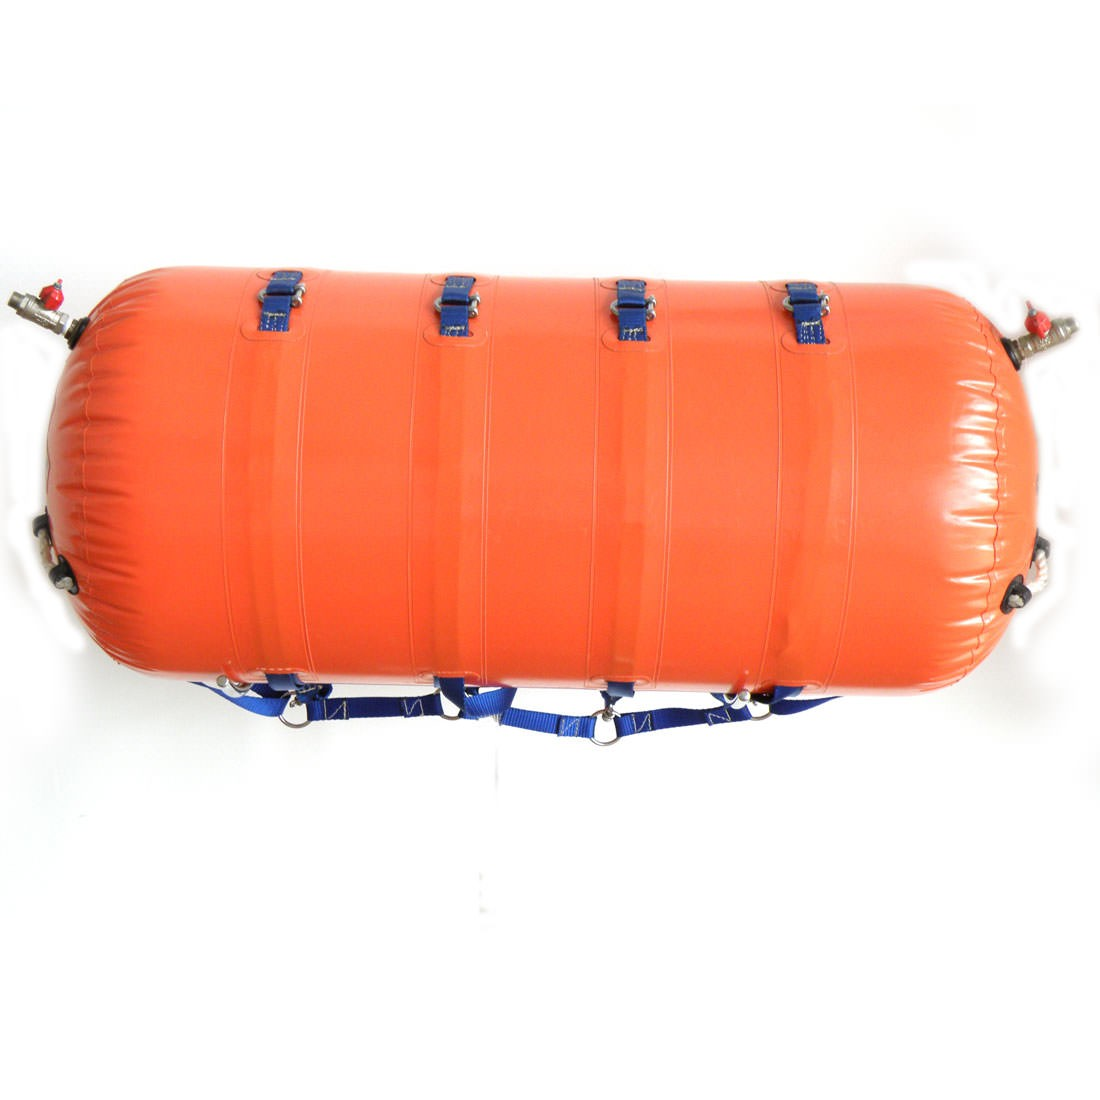 Seaflex Inflatable Buoyancy Unit 44,092 lbs 20,000 kg Lift Capacity SEF-20TIBU-016